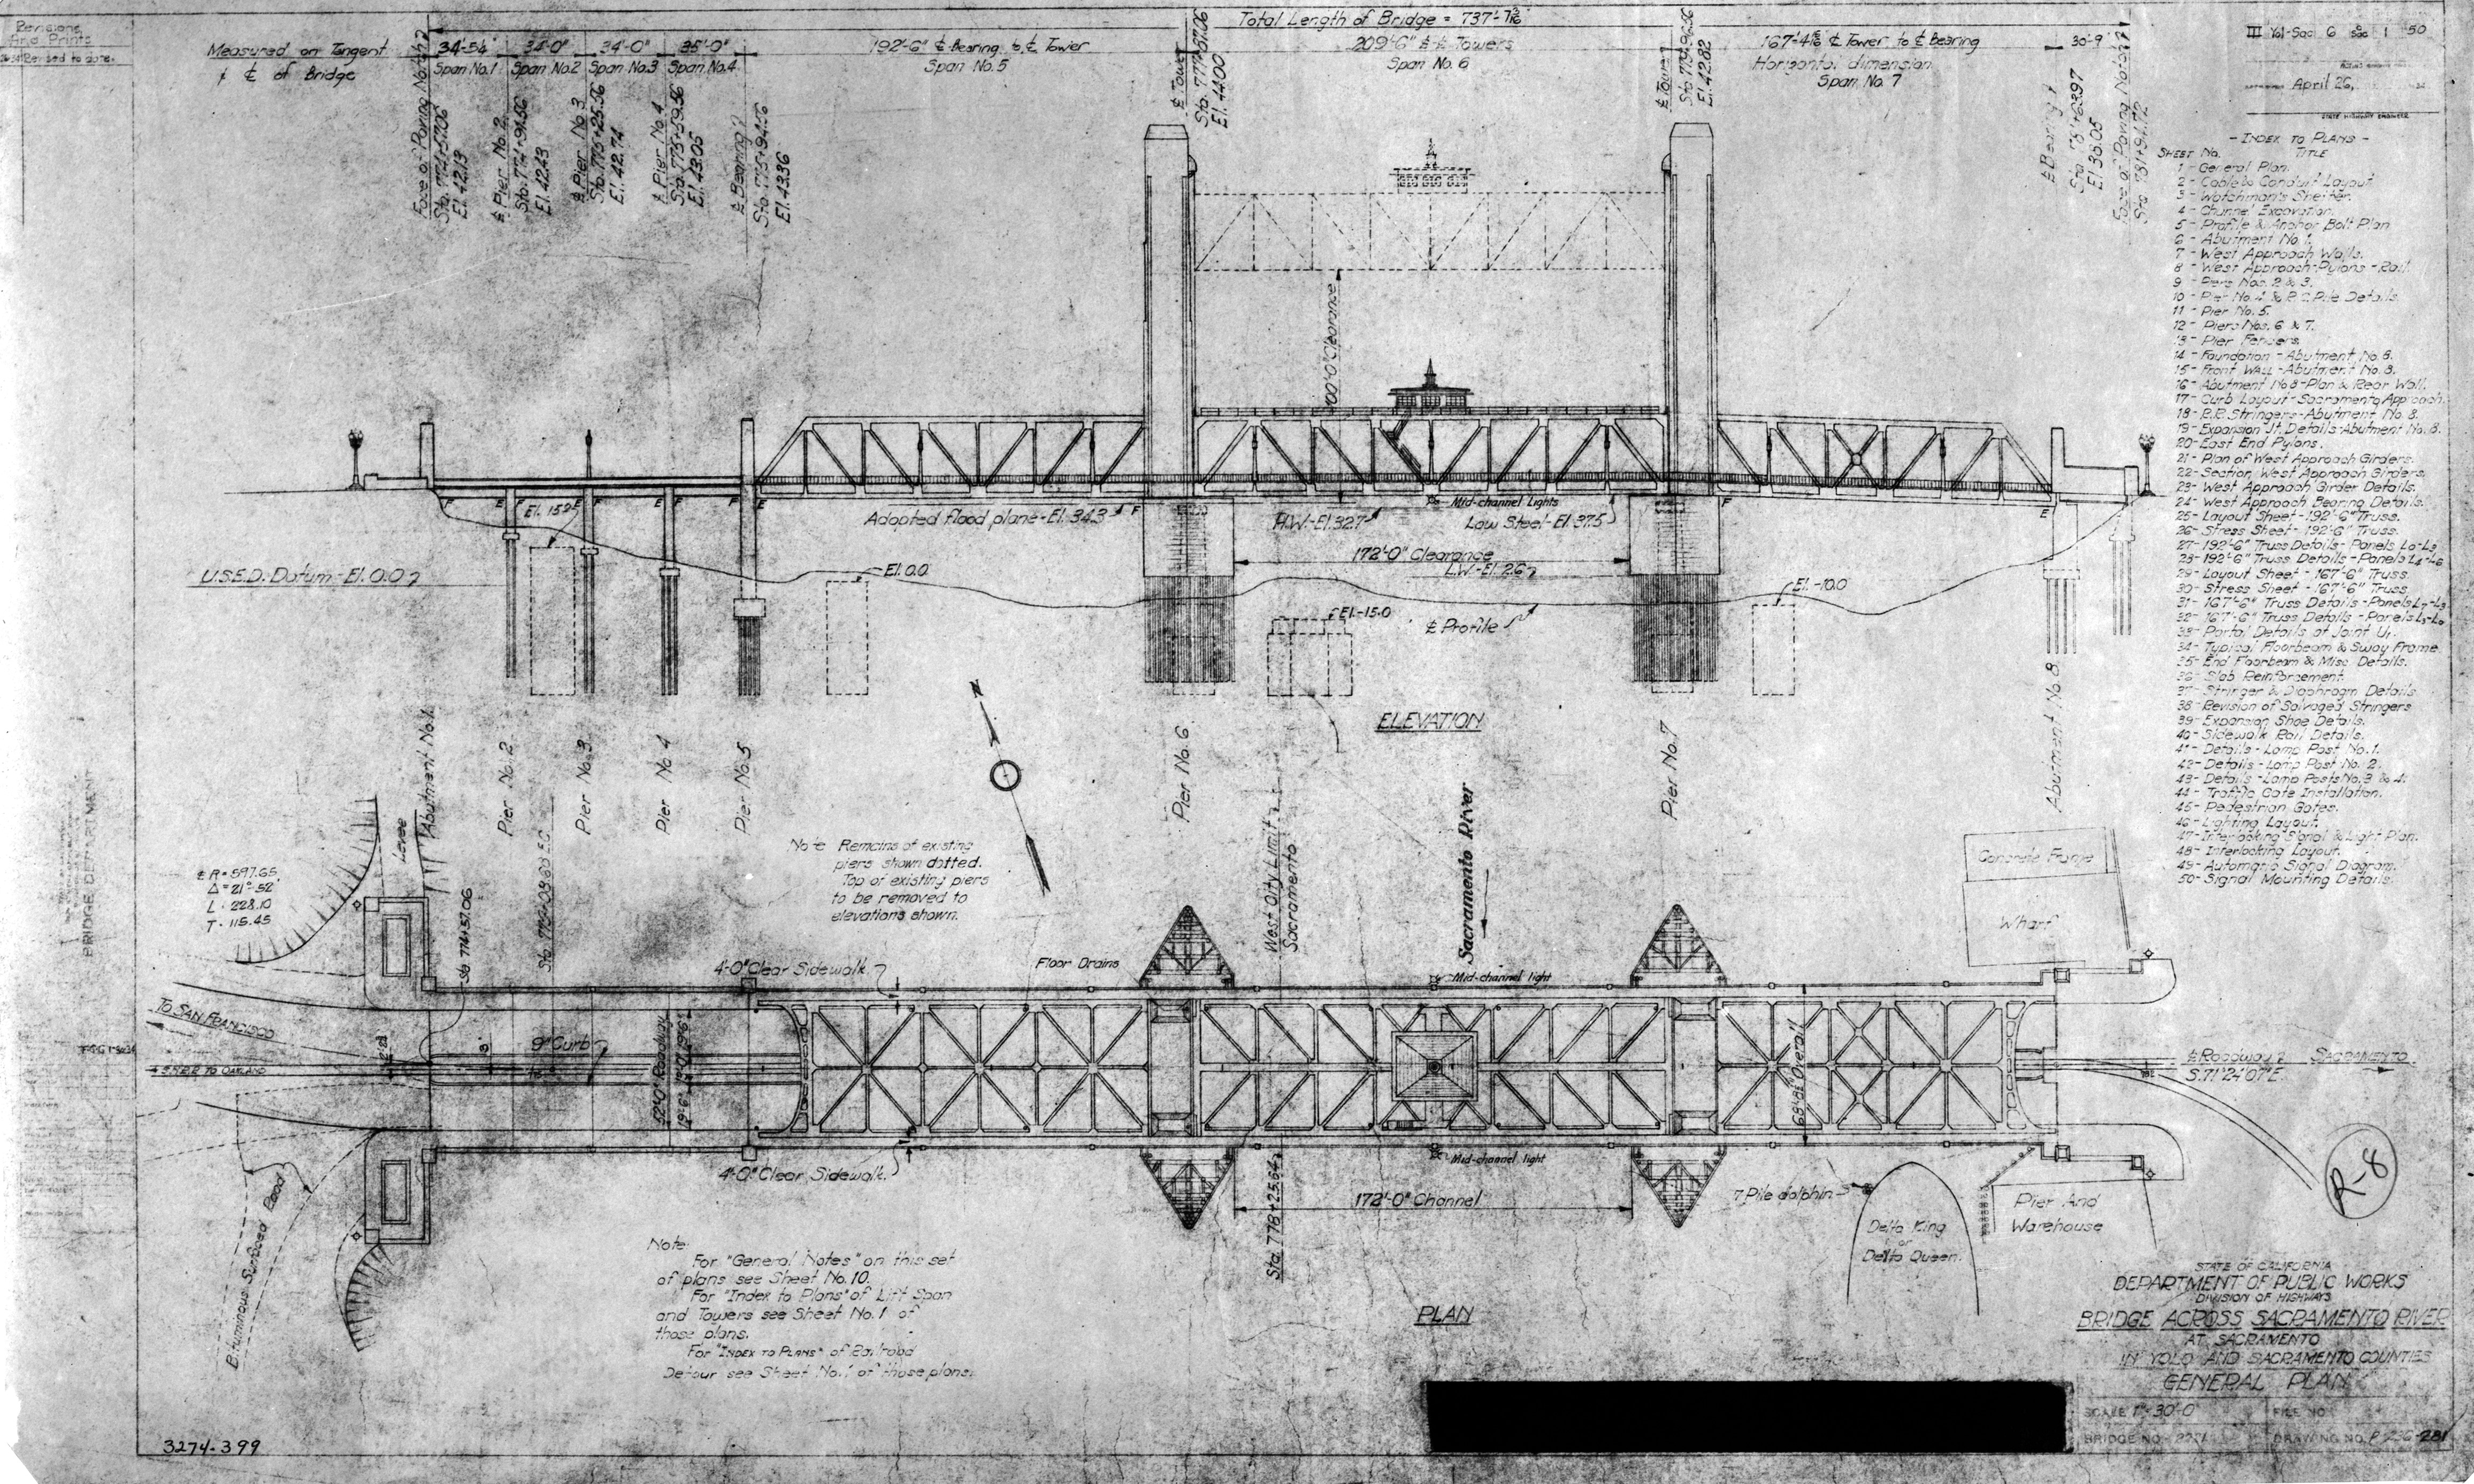 view the national register of historic places nomination form for this bridge architectural drawings bridges f22 bridges